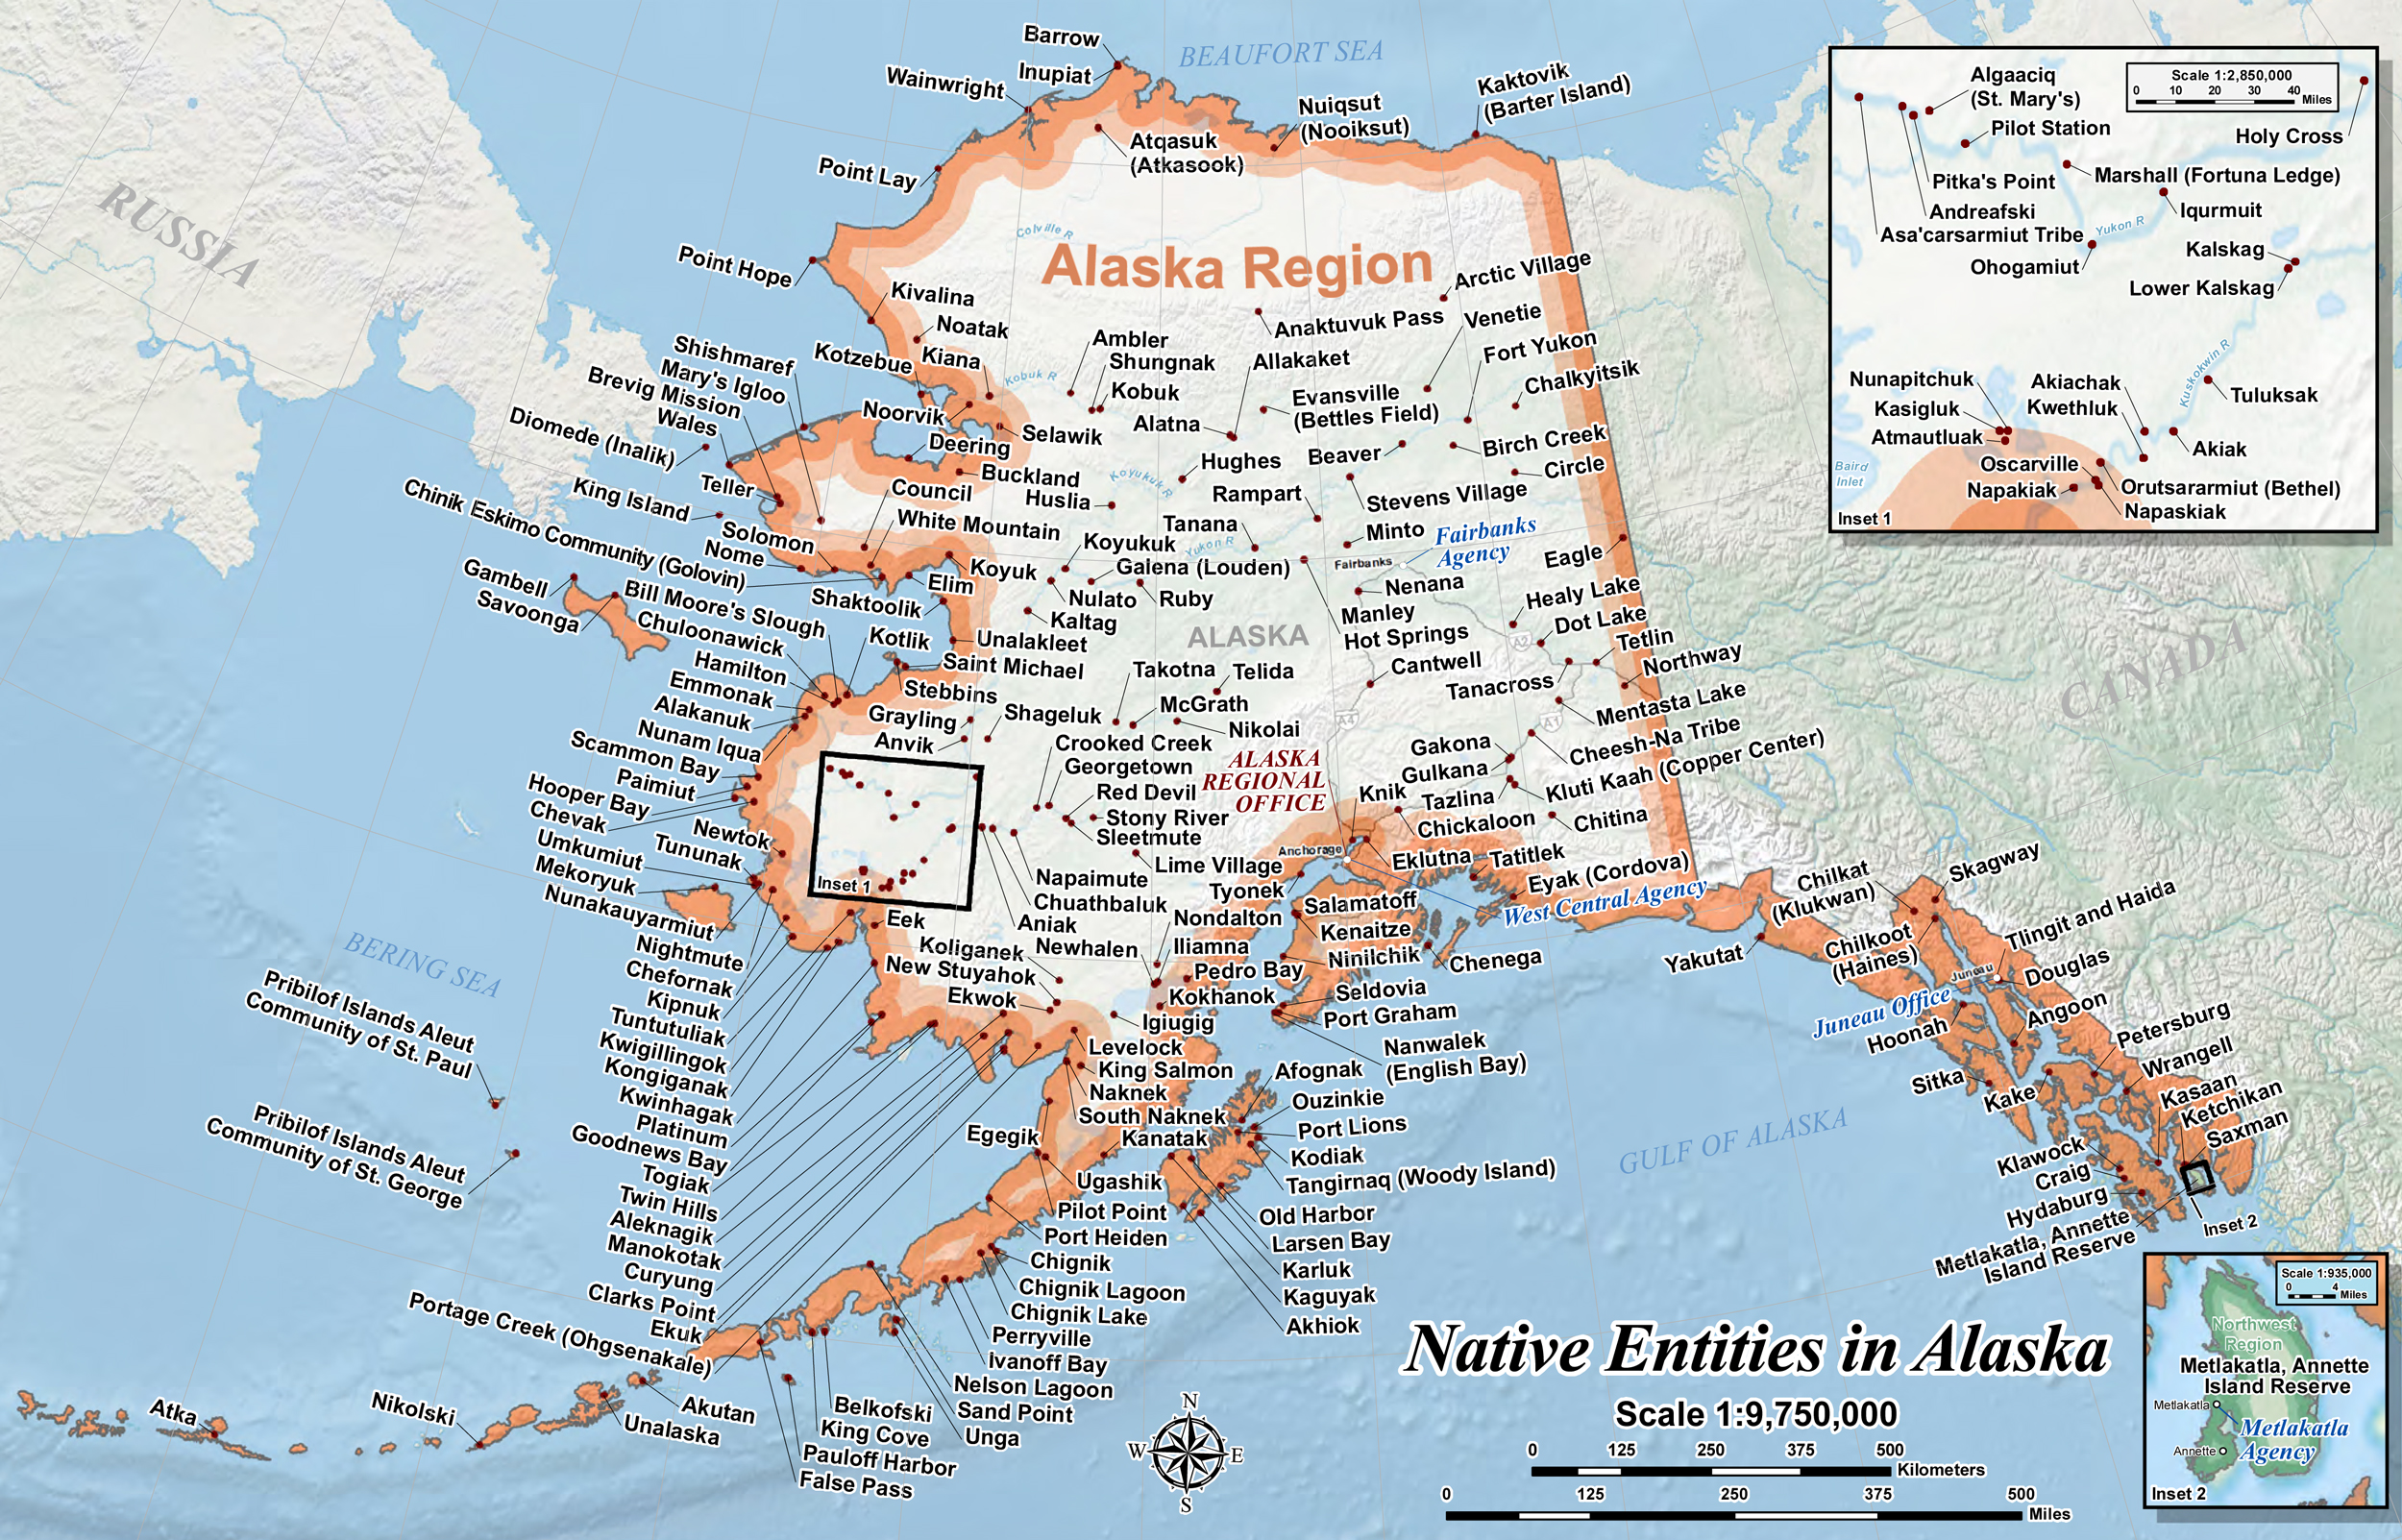 Map of Native Entities in Alaska / Villages